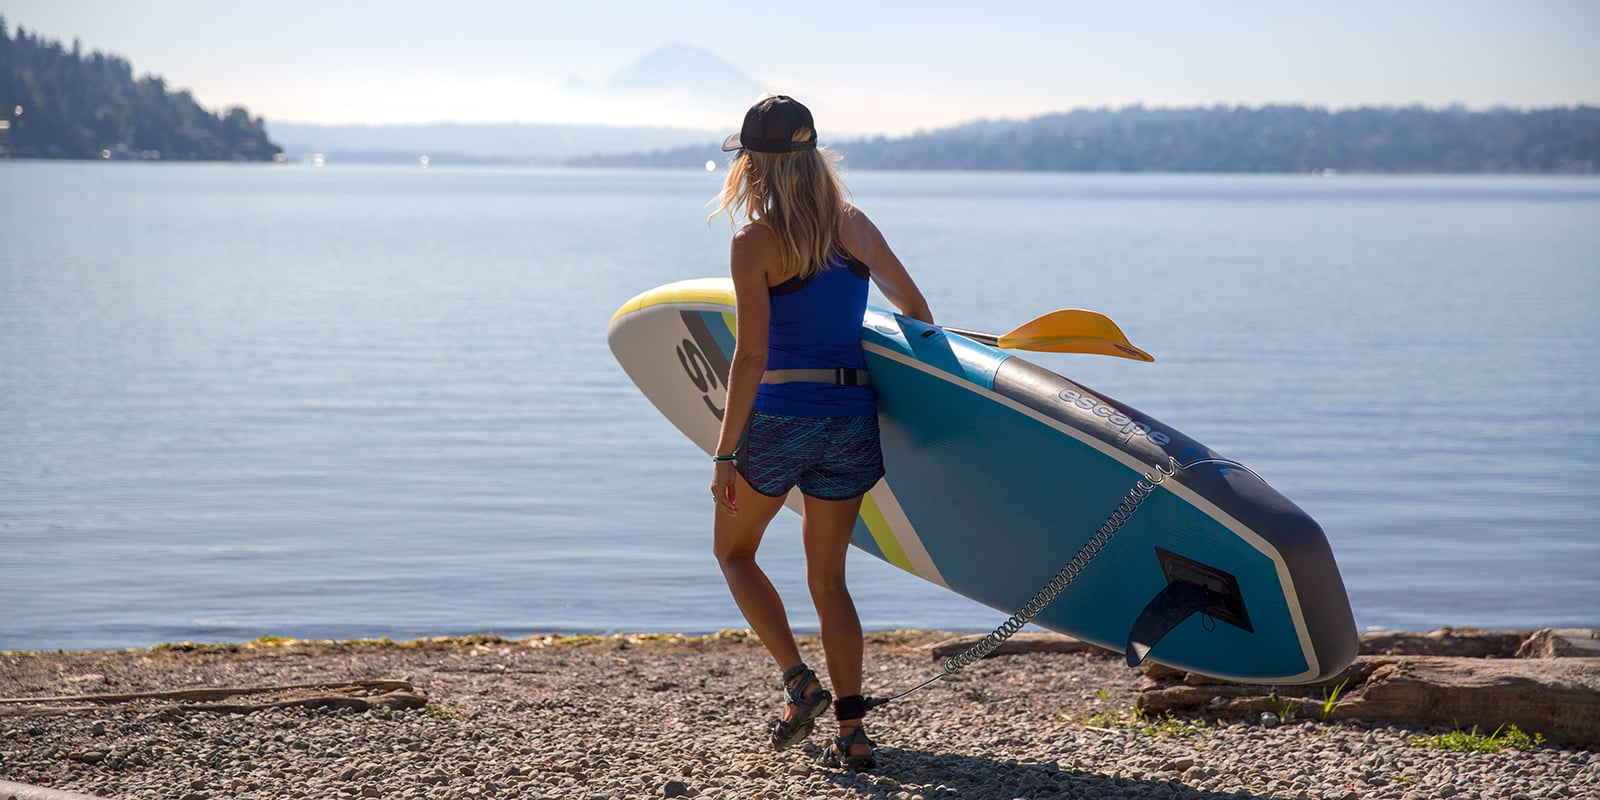 how to launch paddle board